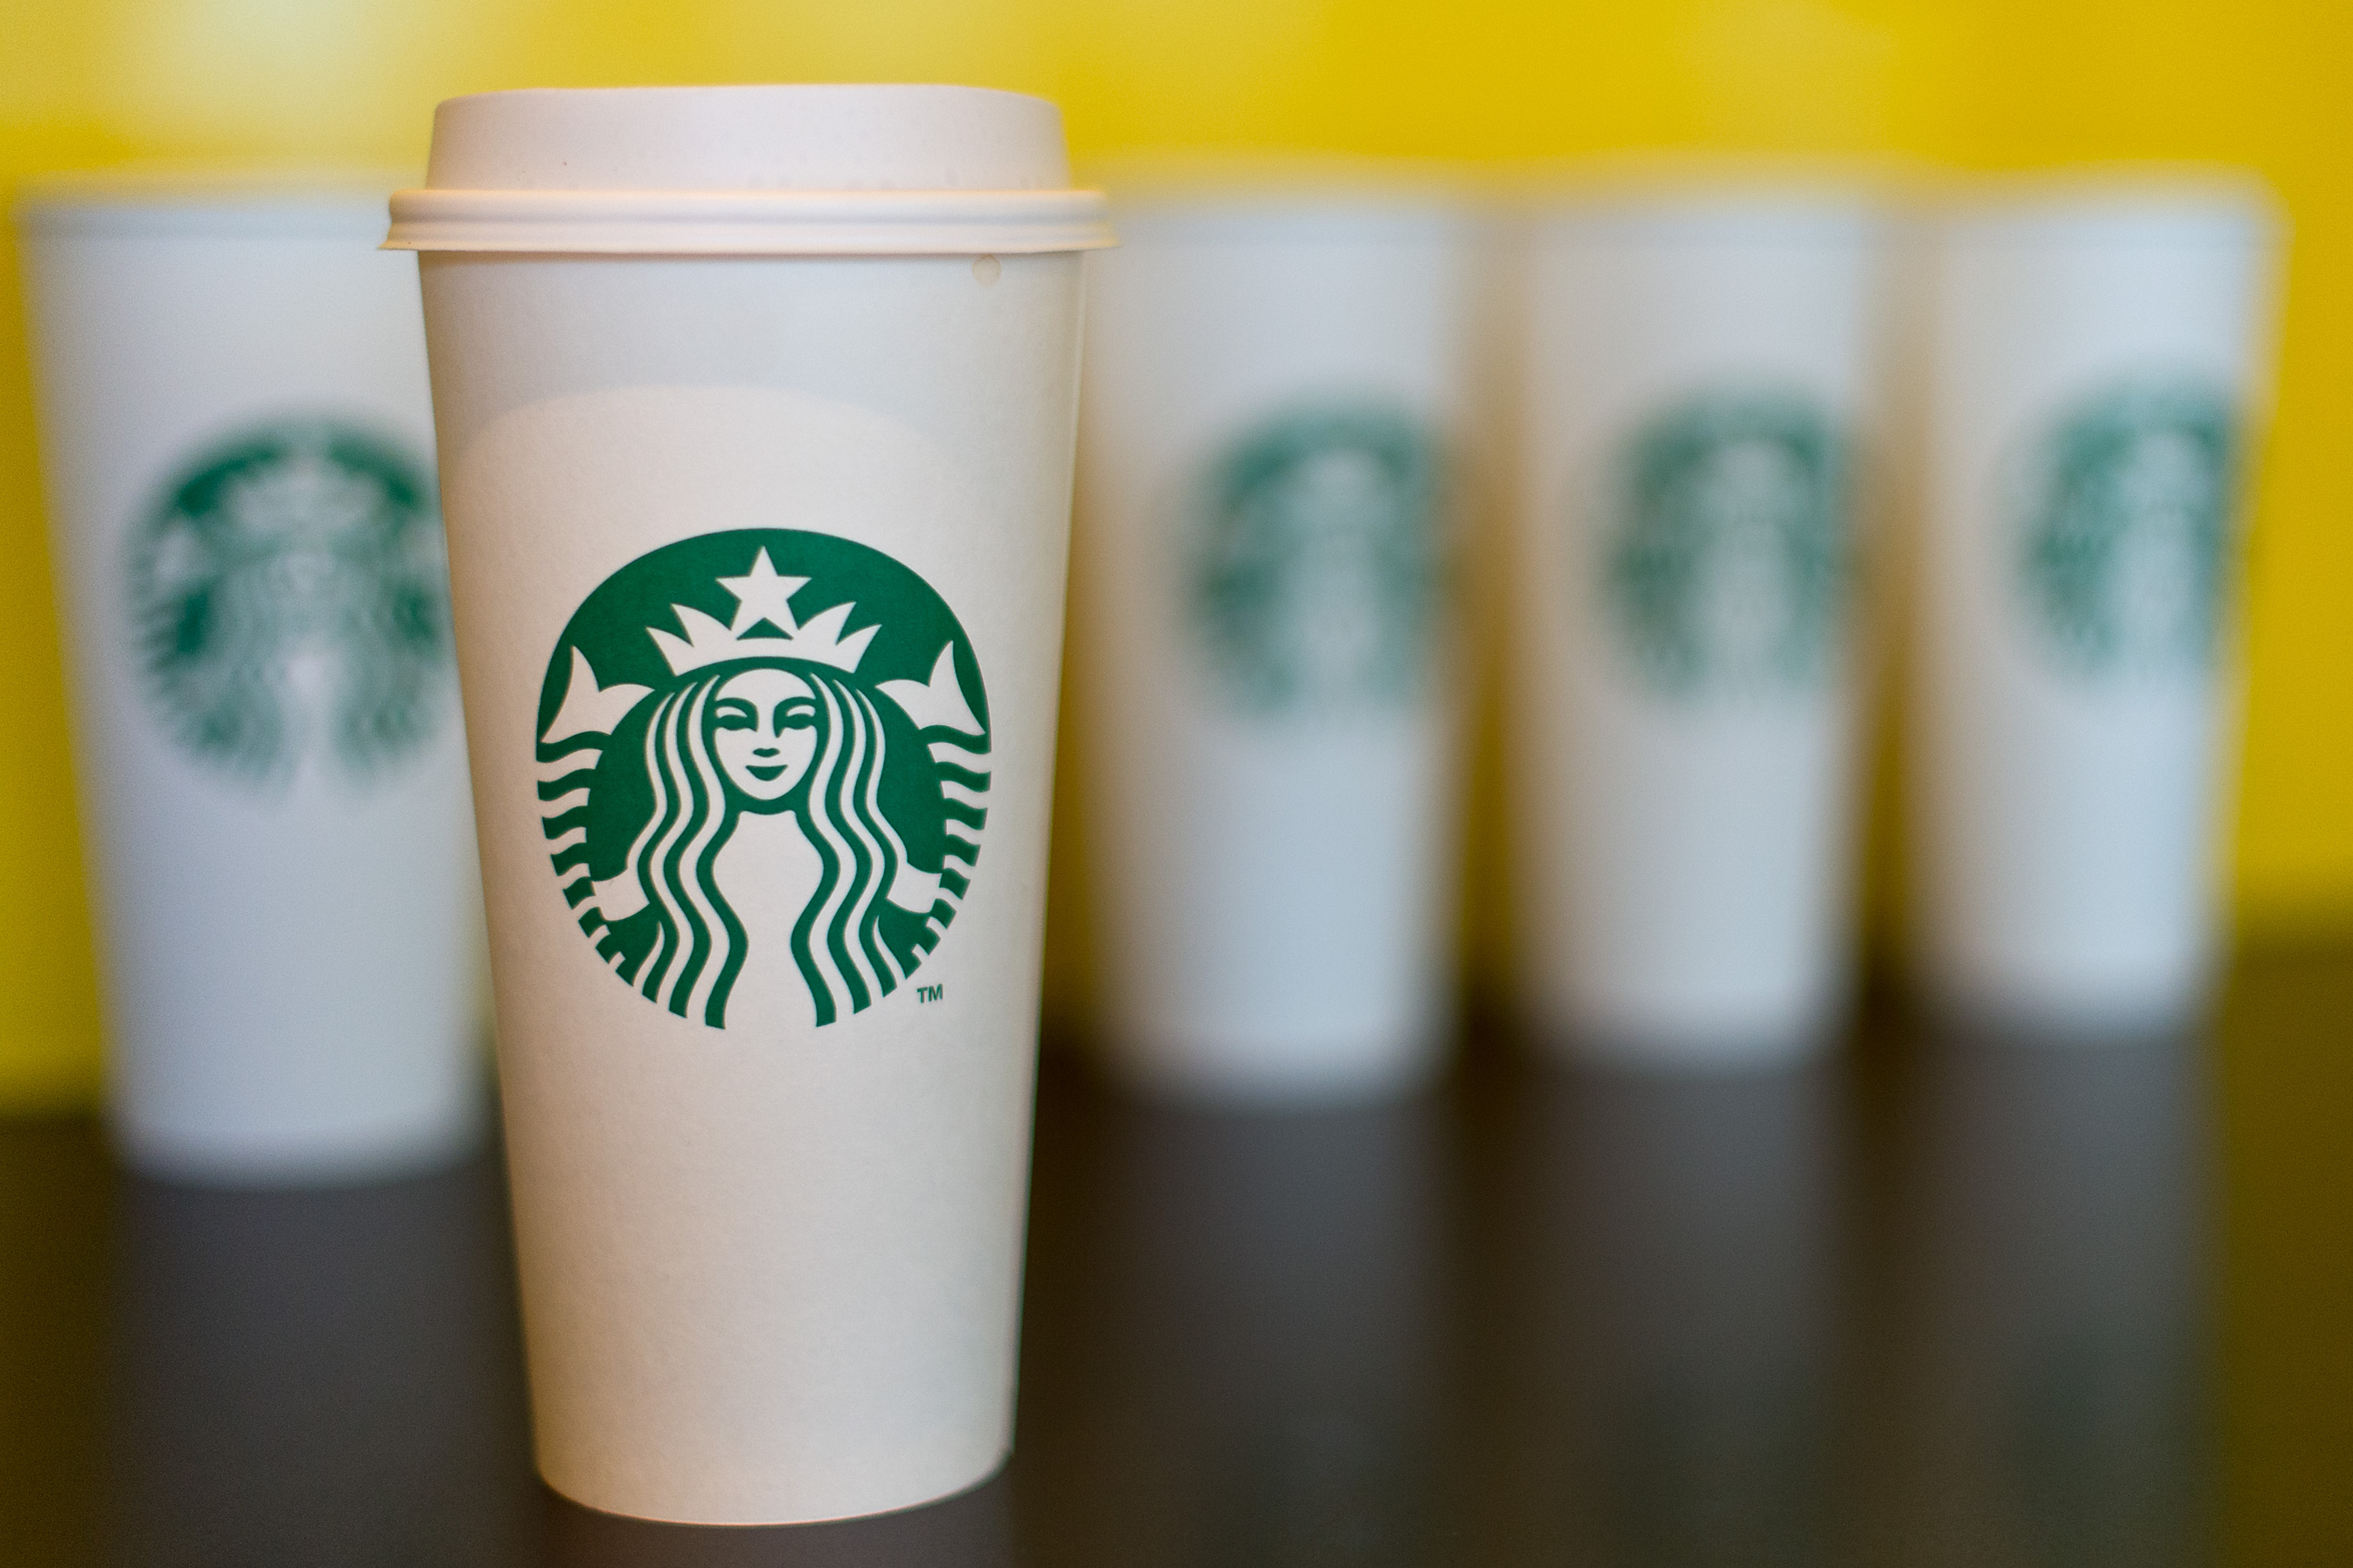 Starbucks Customers Are Pissed About the New Rewards Program [Updated]